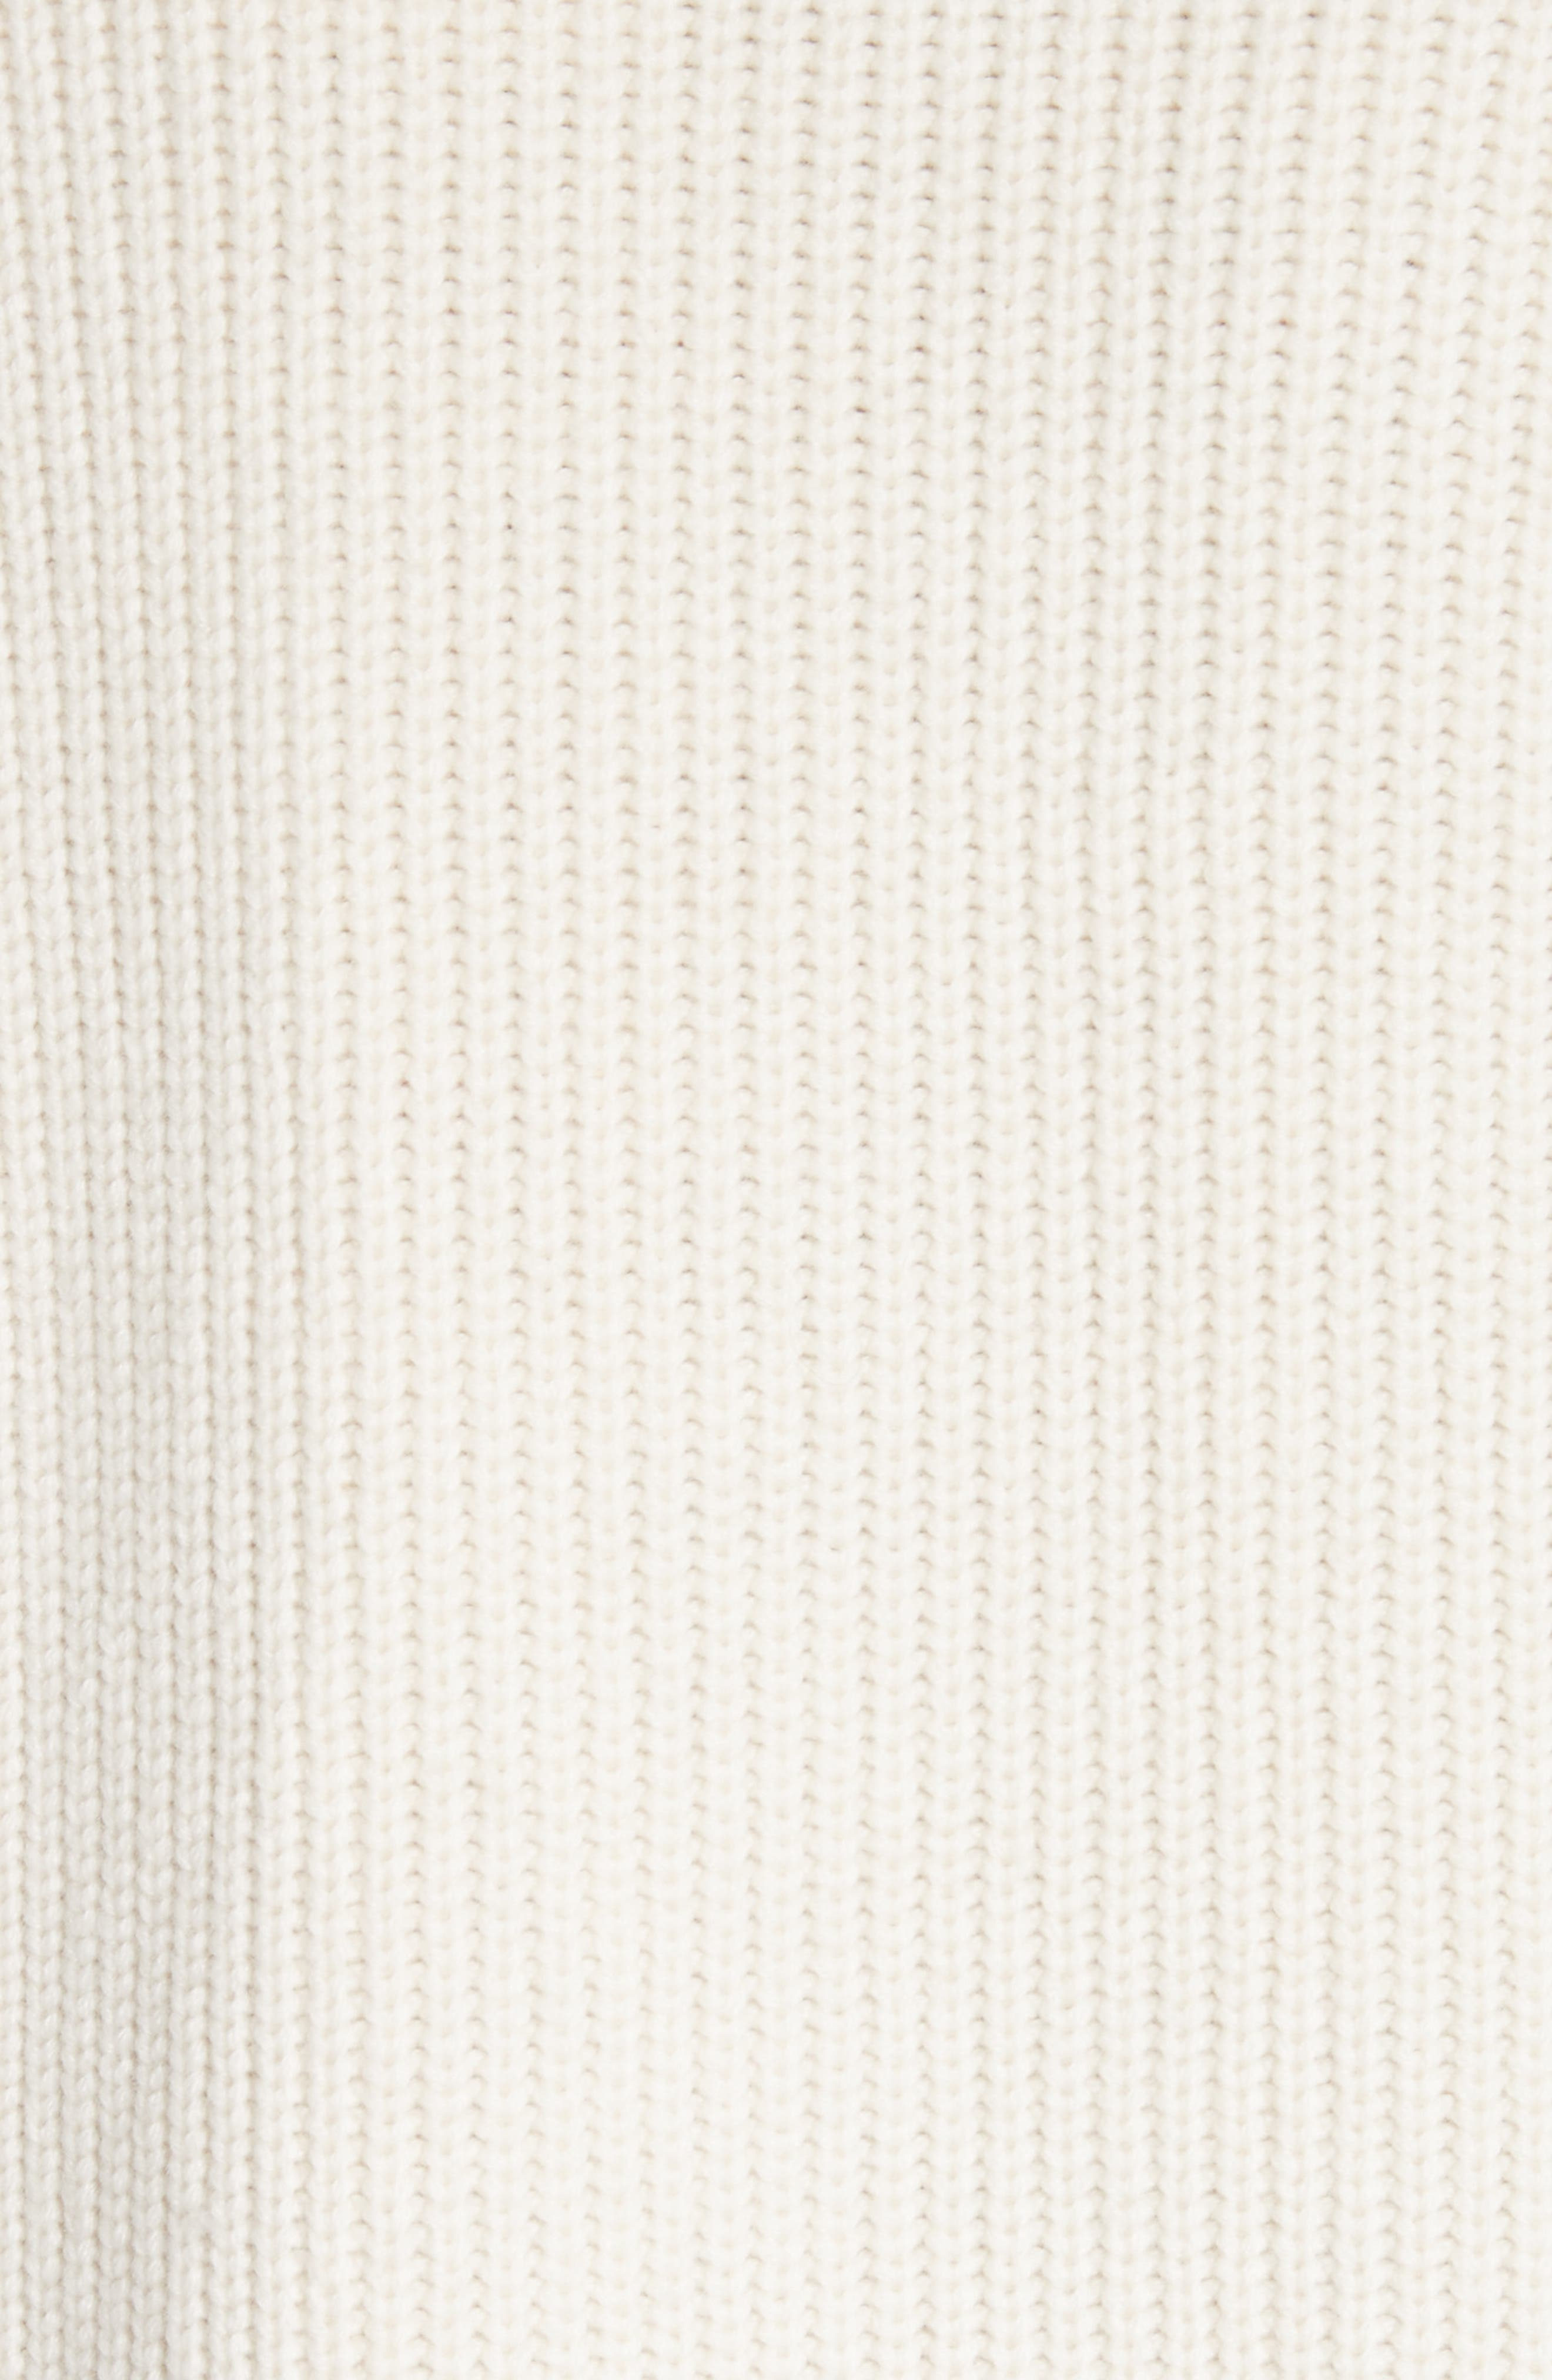 Knox 55 Wool & Cashmere Sweater,                             Alternate thumbnail 6, color,                             Natural White